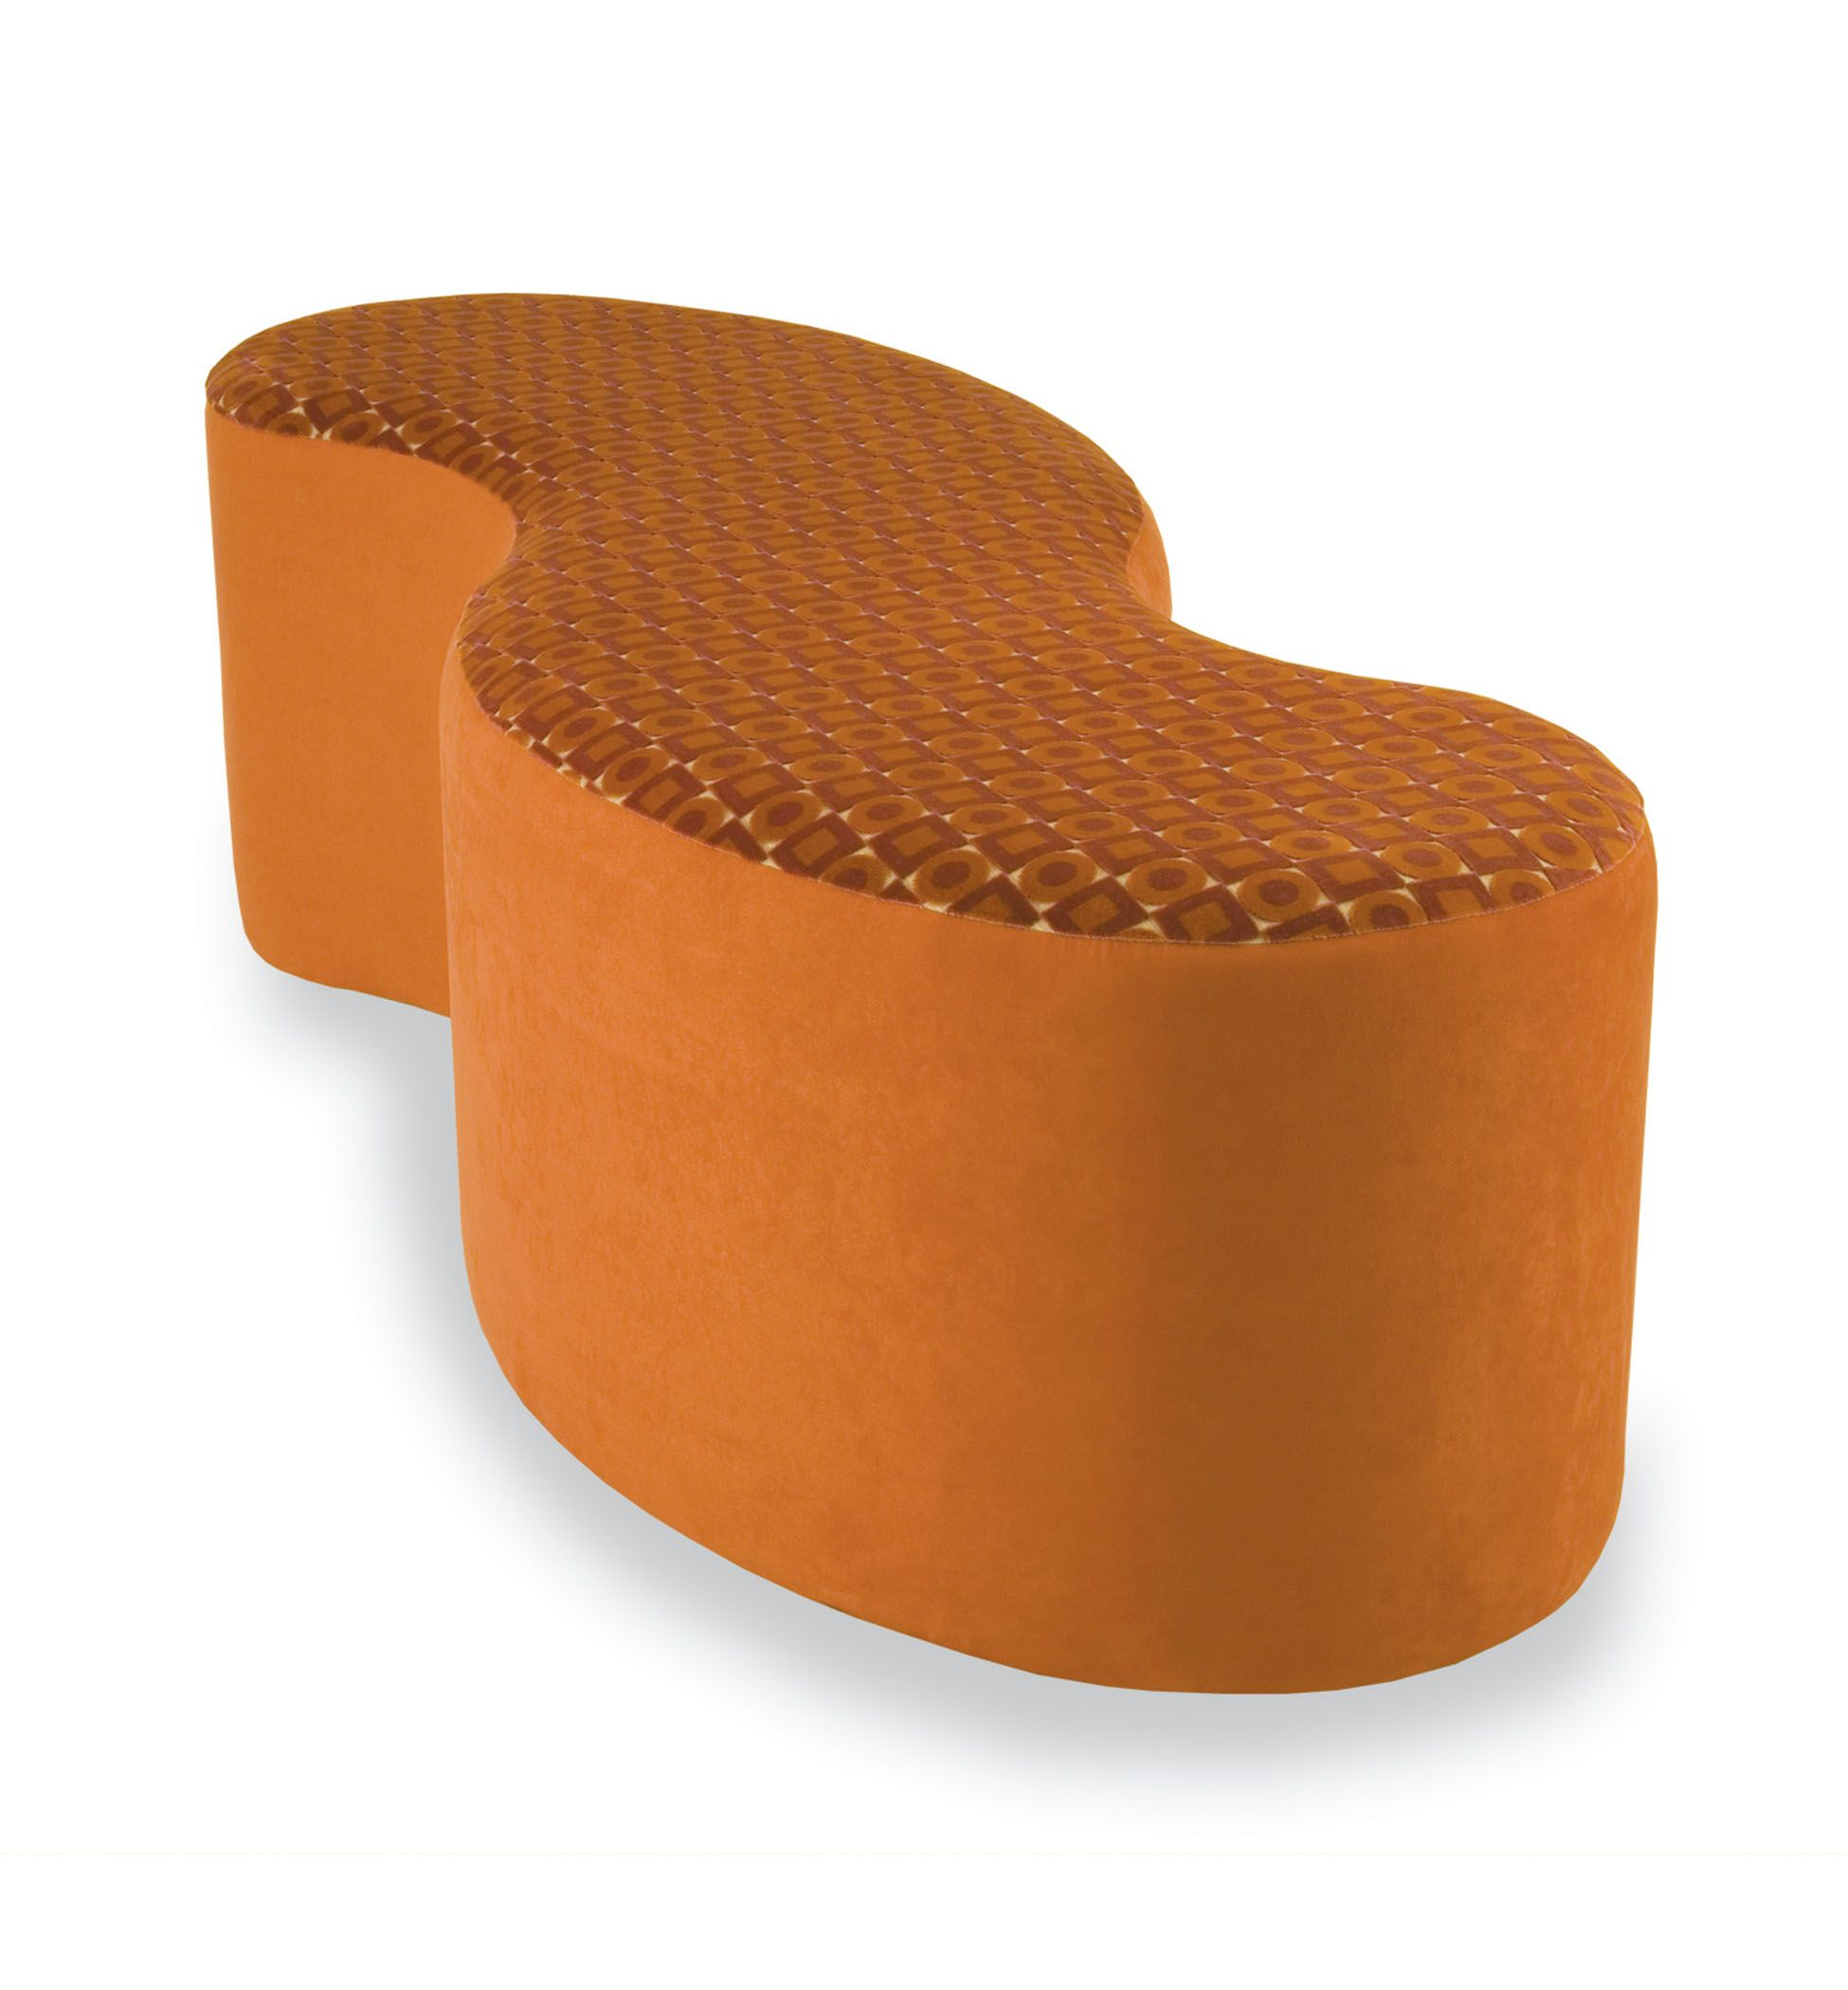 the noodle ottoman  modular products  pinterest  noodle  - the noodle ottoman